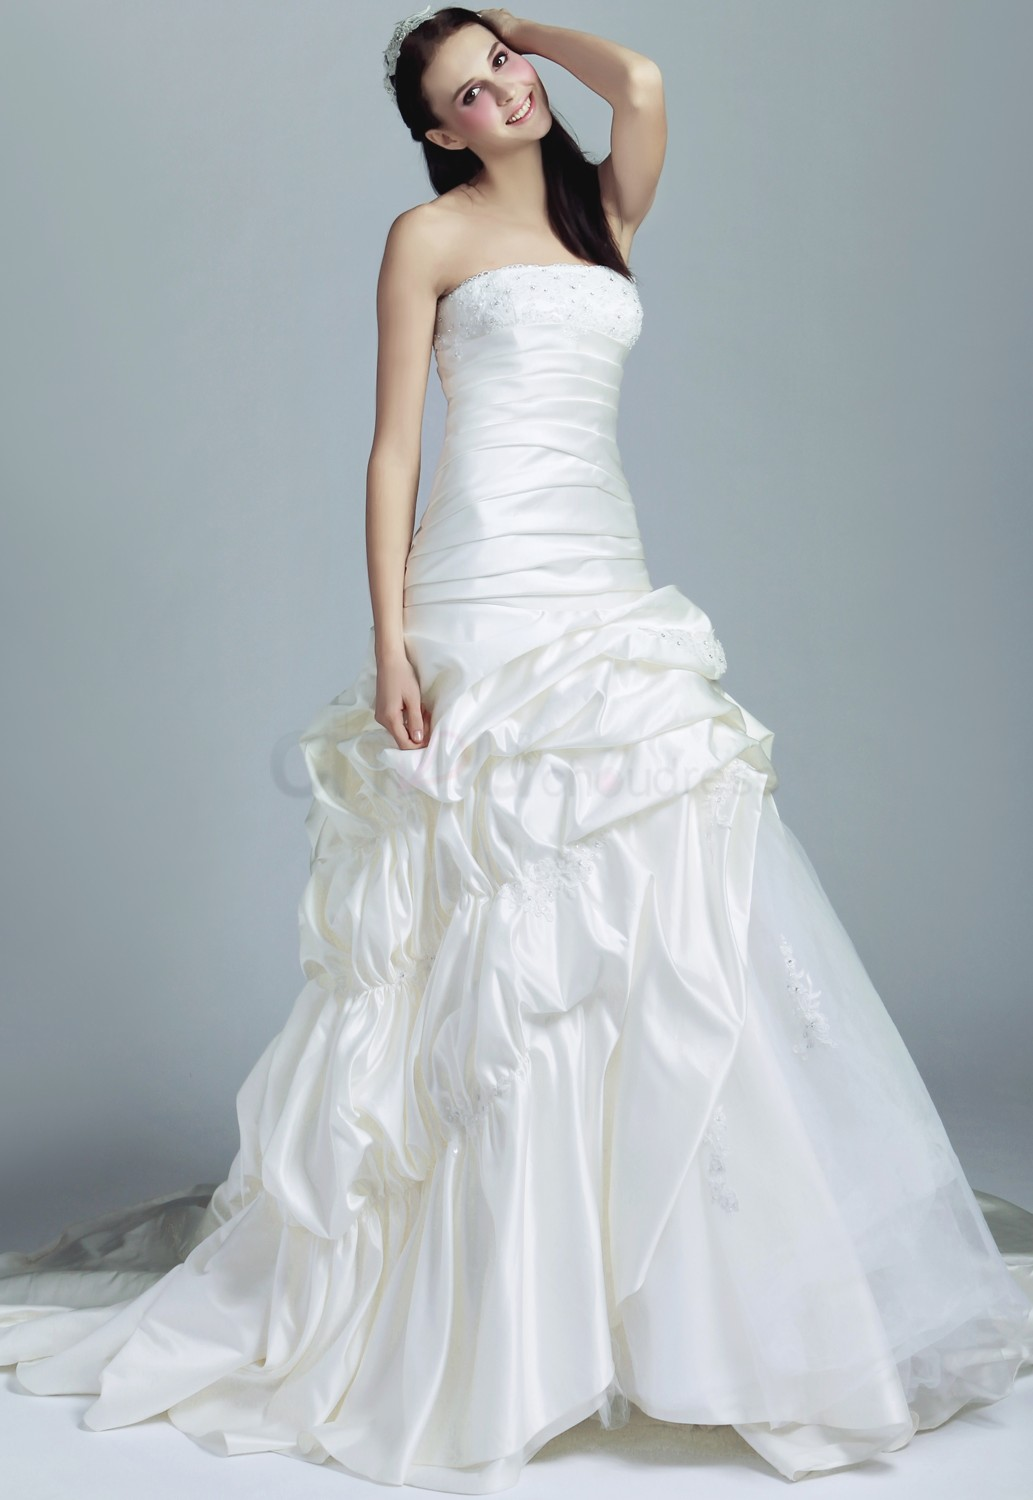 wedding dresses cold climates: Best Wedding Dress Styles For Wide Hips